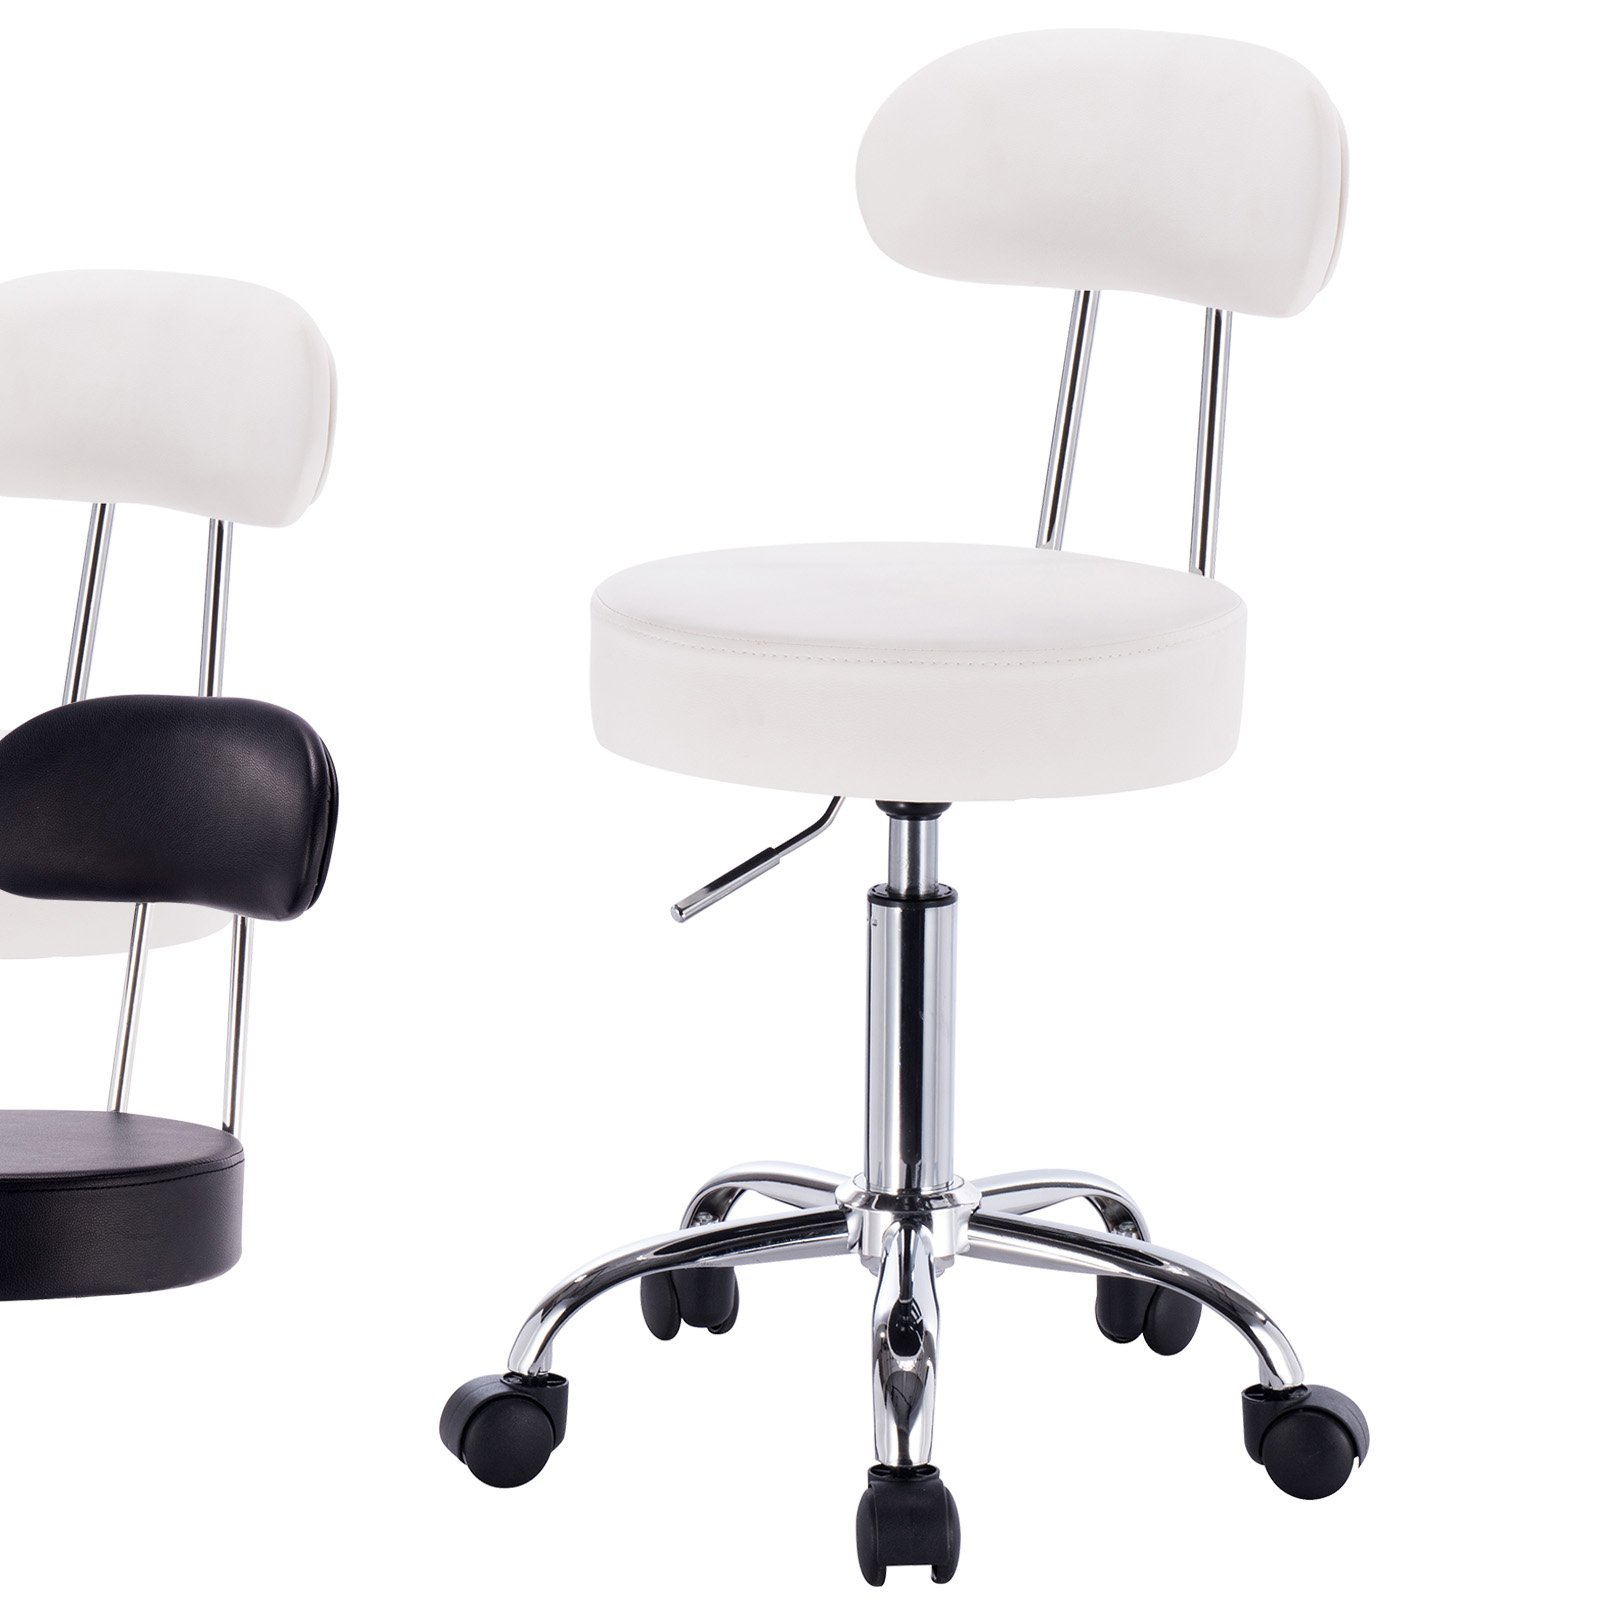 WOLTU ABSX1008whi-a 1x Rolling Swivel Hydraulic Chair with Back Synthenic Leather Round Seat Stools for Home Office Lab Medical Spa Massage Salon Adjustable Seat Height:18.5'' to 23.2'',White